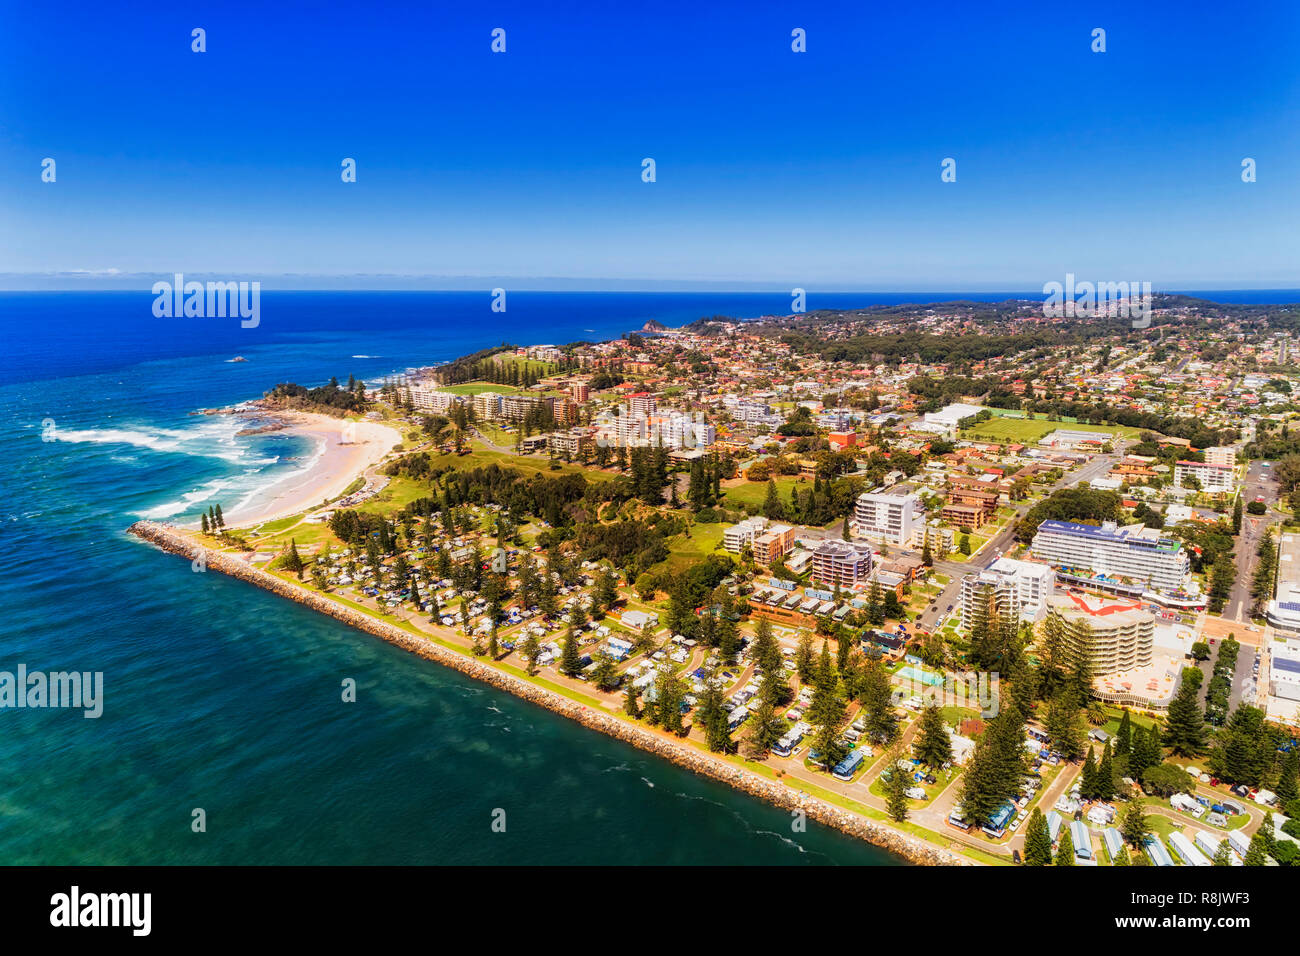 Waterfront of Port Macquarie town on Australian Middle north coast of Pacific ocean along Hastings river on a sunny summer day in aerial view. Stock Photo